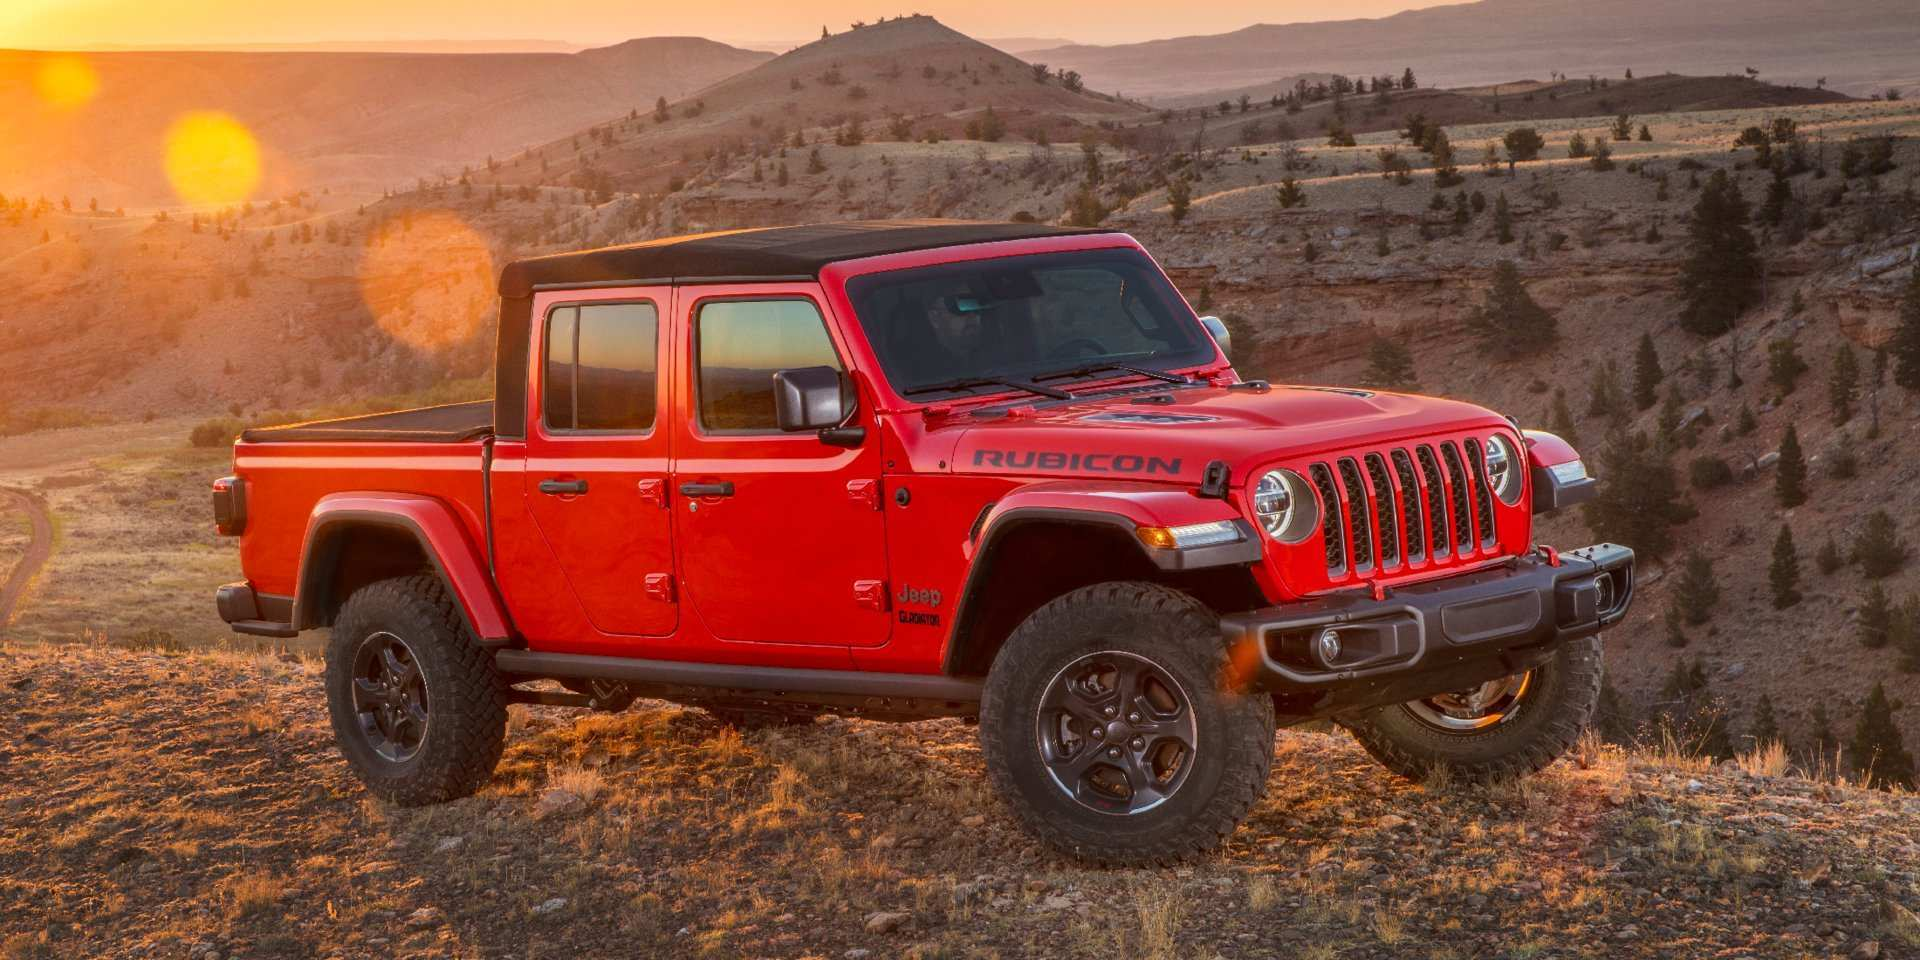 61 All New 2019 Jeep Gladiator Price First Drive by 2019 Jeep Gladiator Price